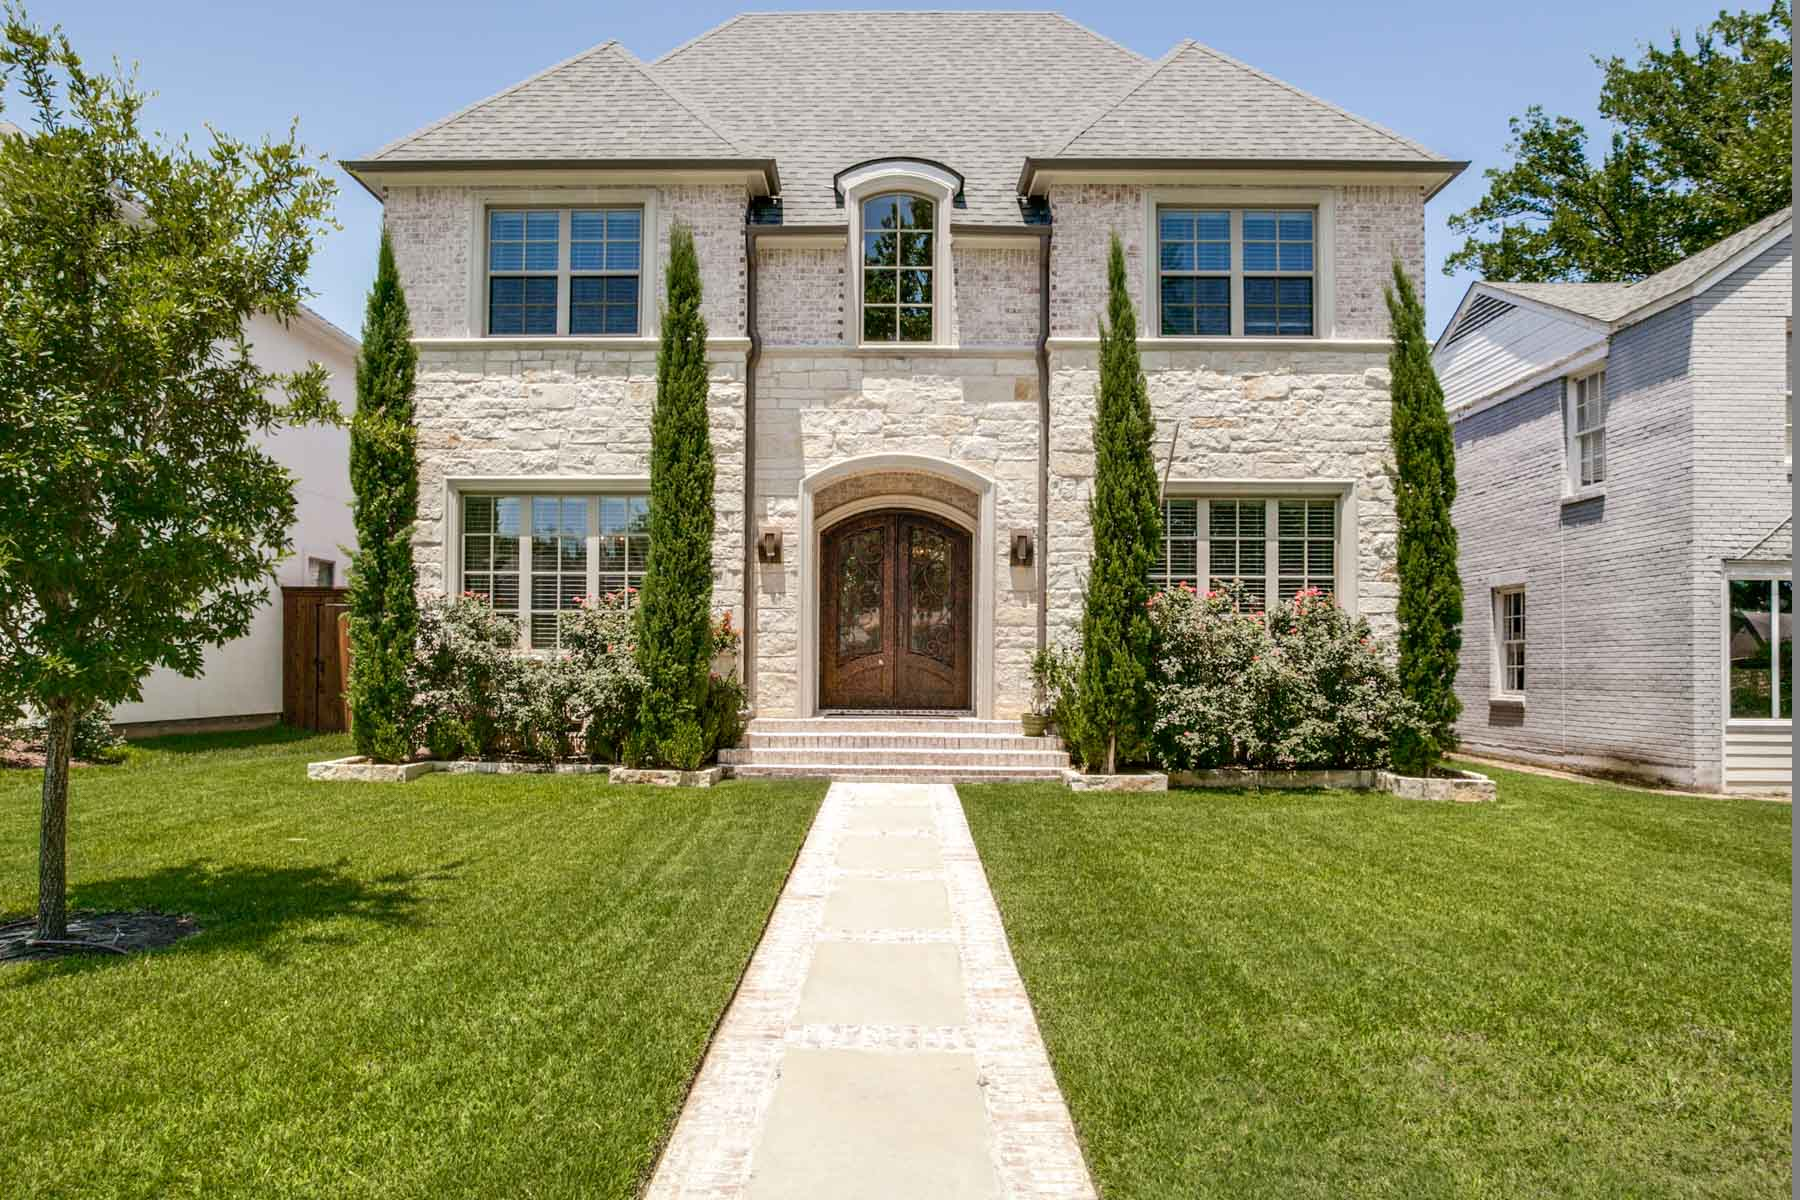 단독 가정 주택 용 매매 에 Perfect Family Home within Walking Distance to High School 4328 Druid Lane Dallas, 텍사스, 75205 미국